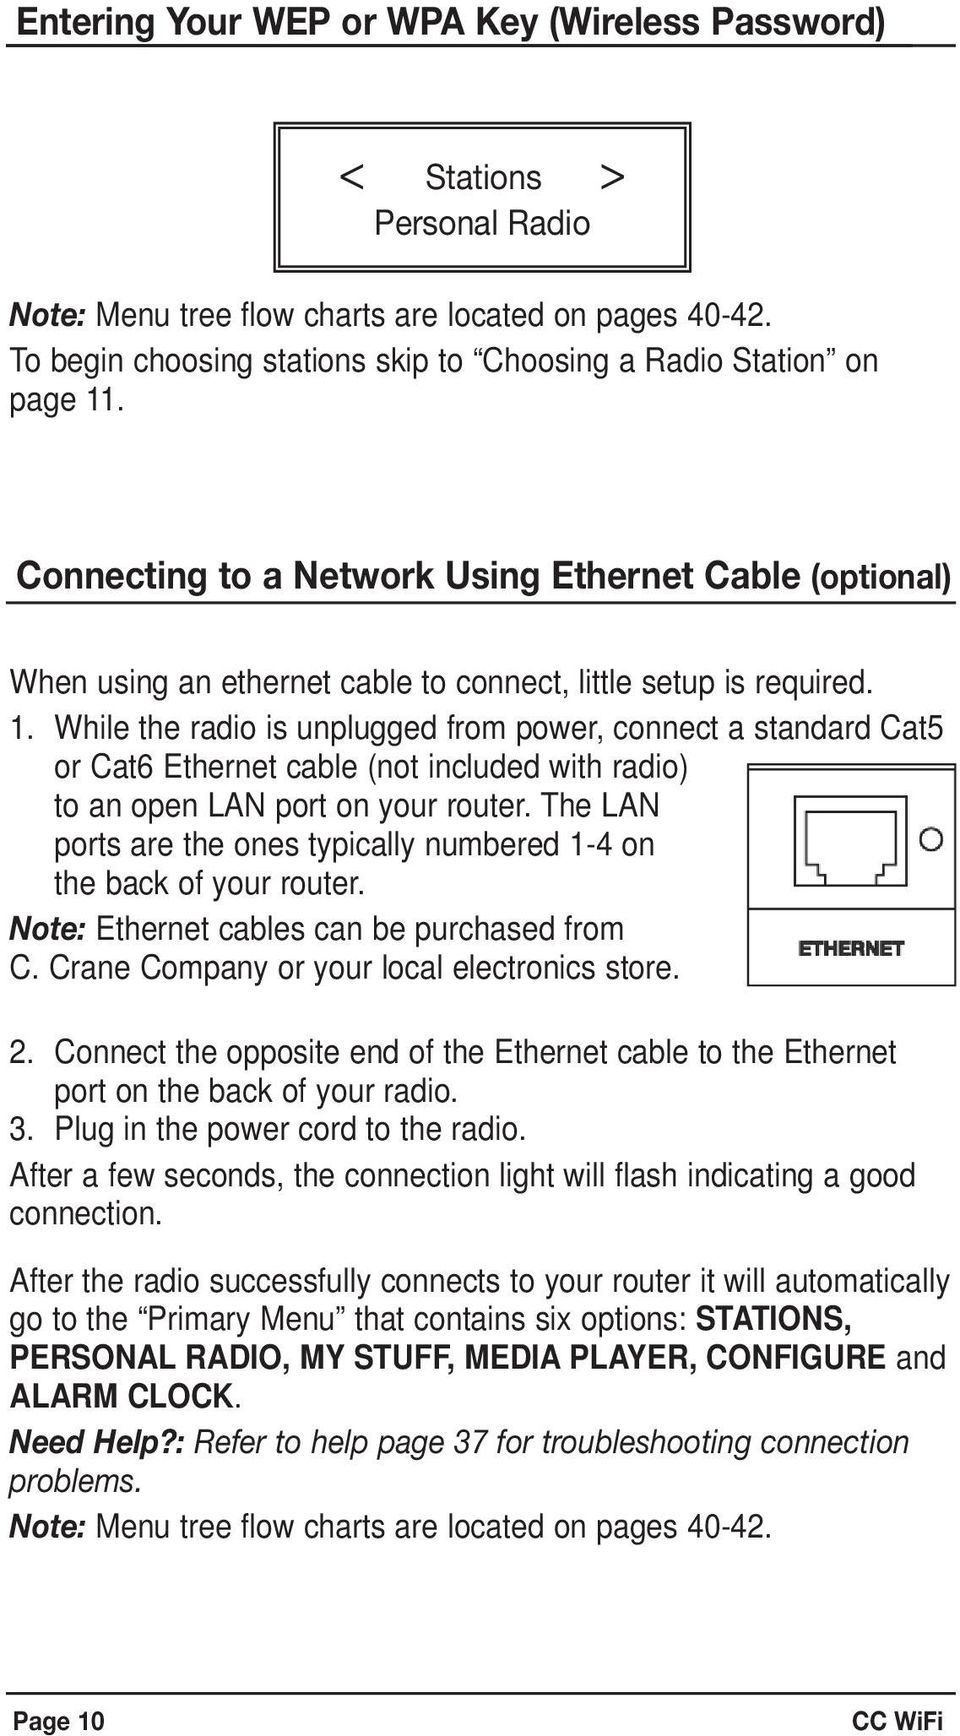 . Connecting to a Network Using Ethernet Cable (optional) When using an ethernet cable to connect, little setup is required. 1.